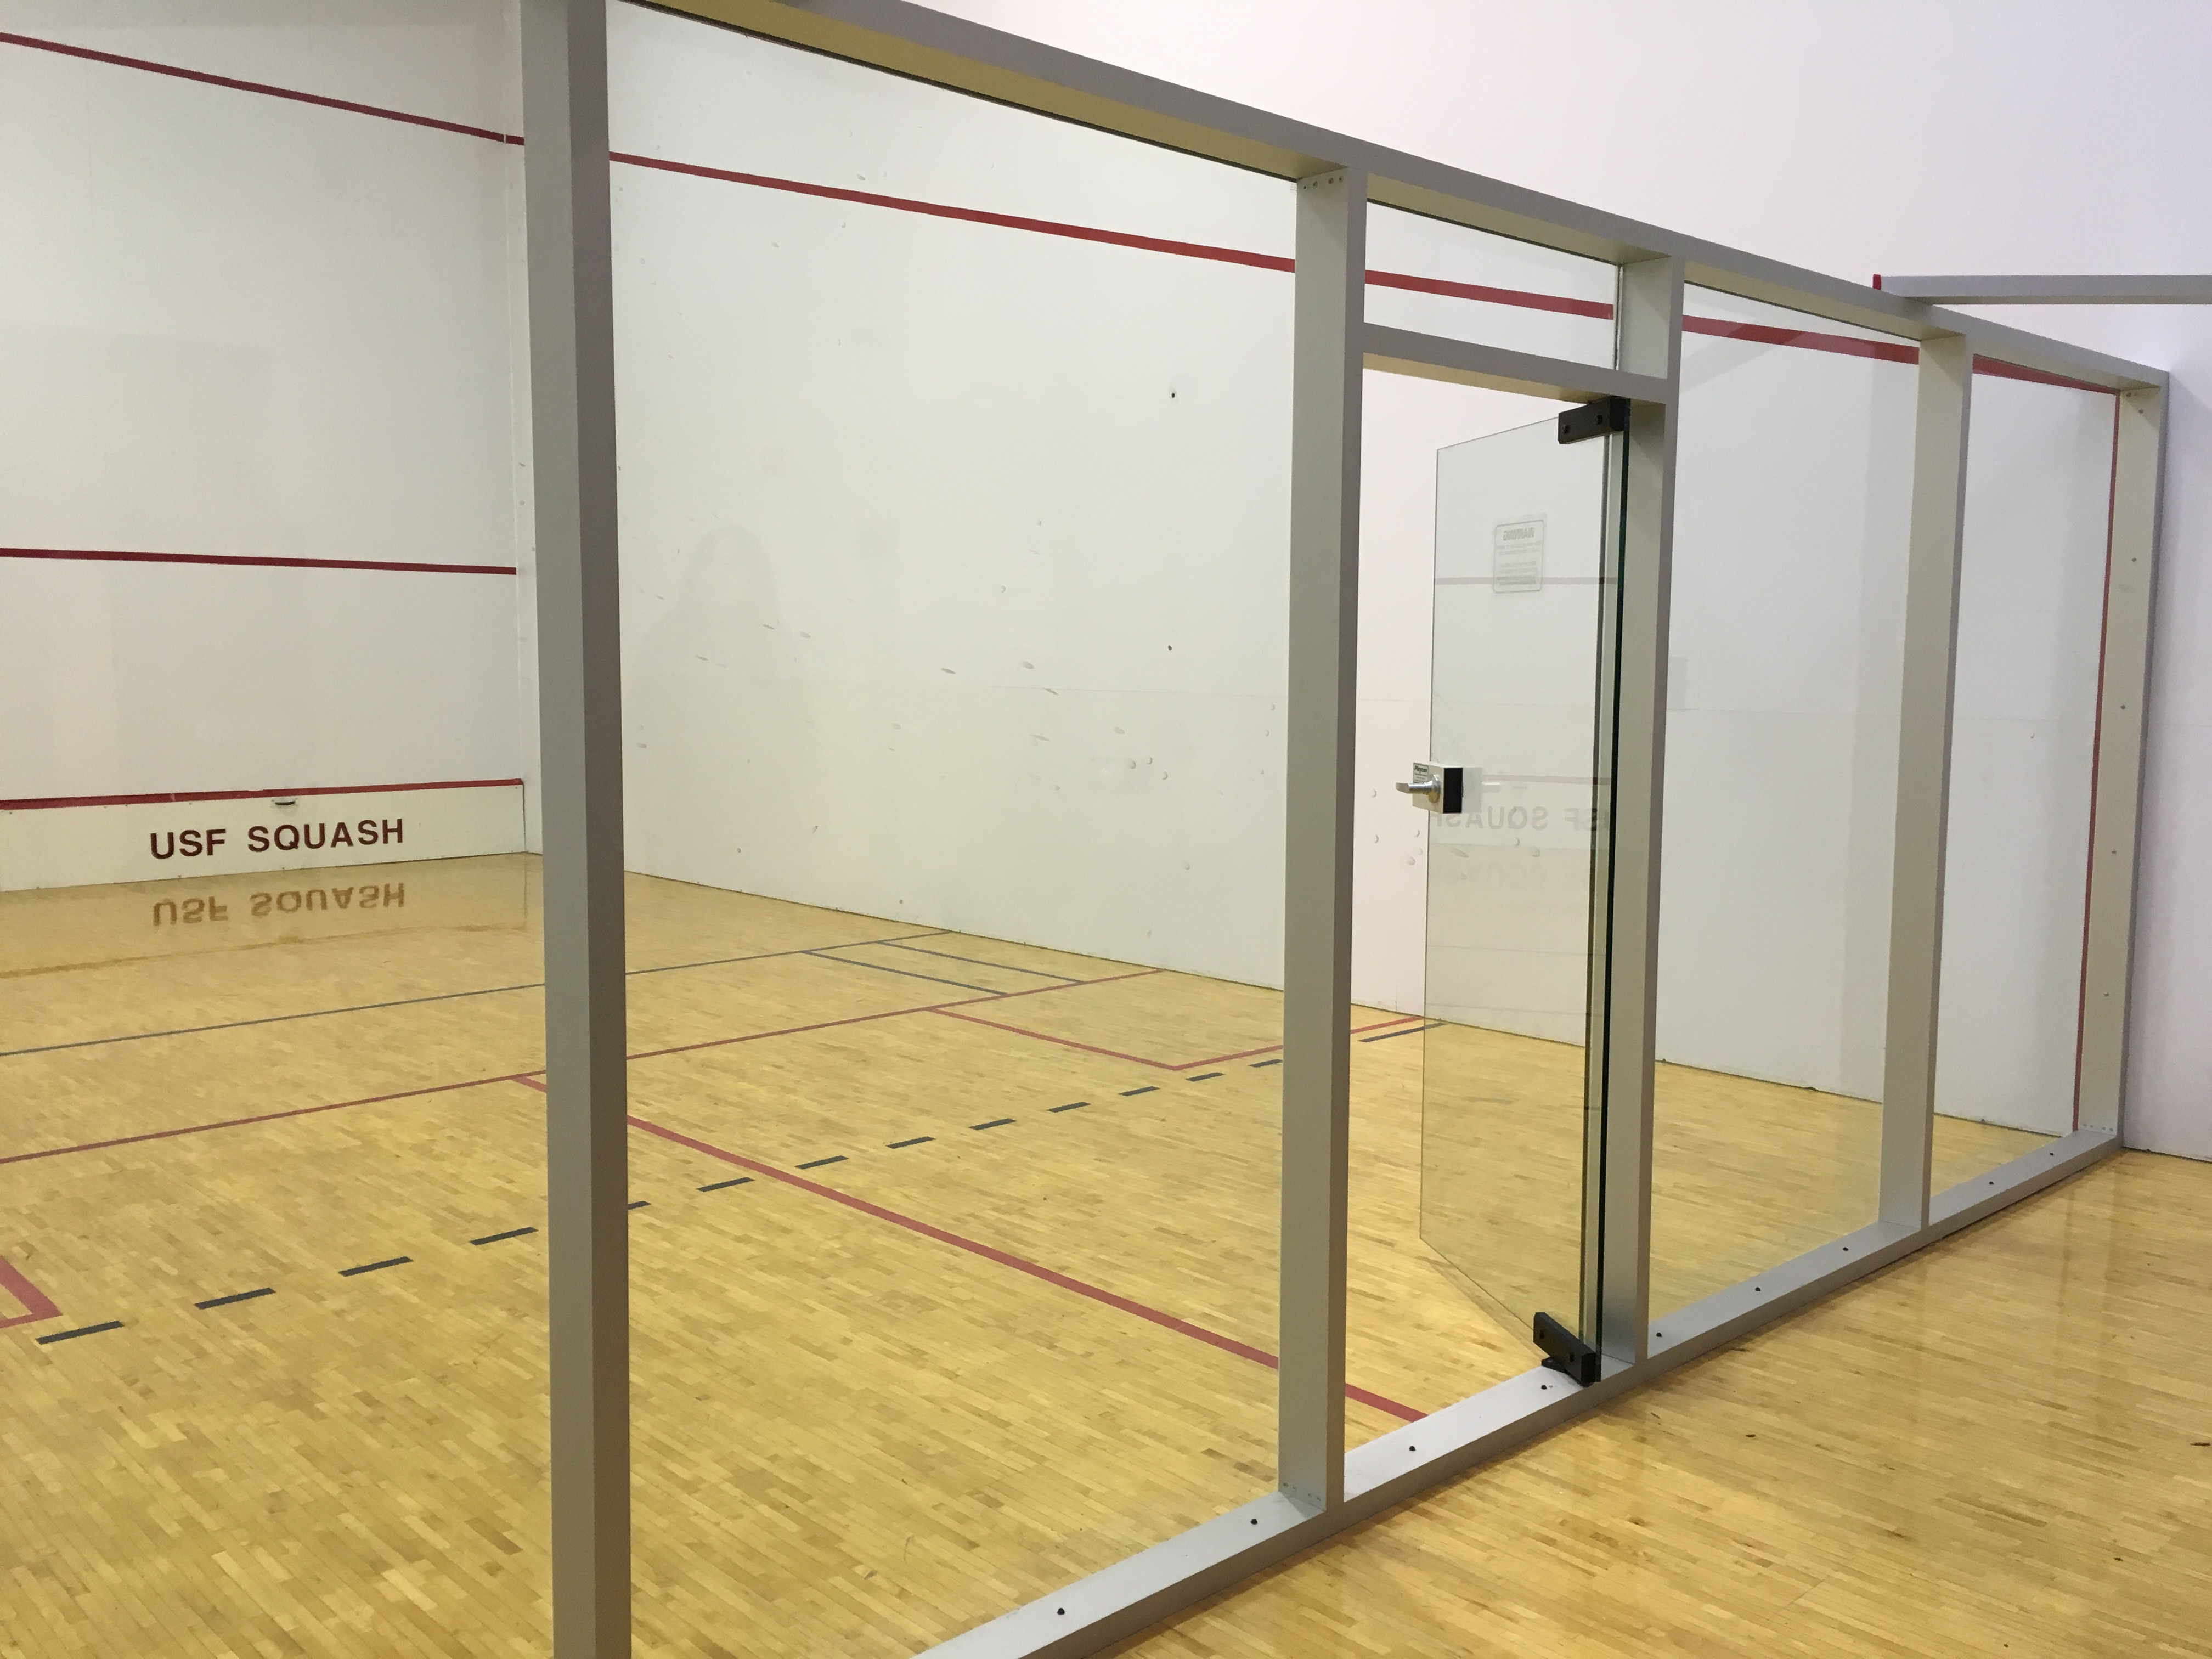 squash court fitness room venue reservation rental space usf campus rec recreation